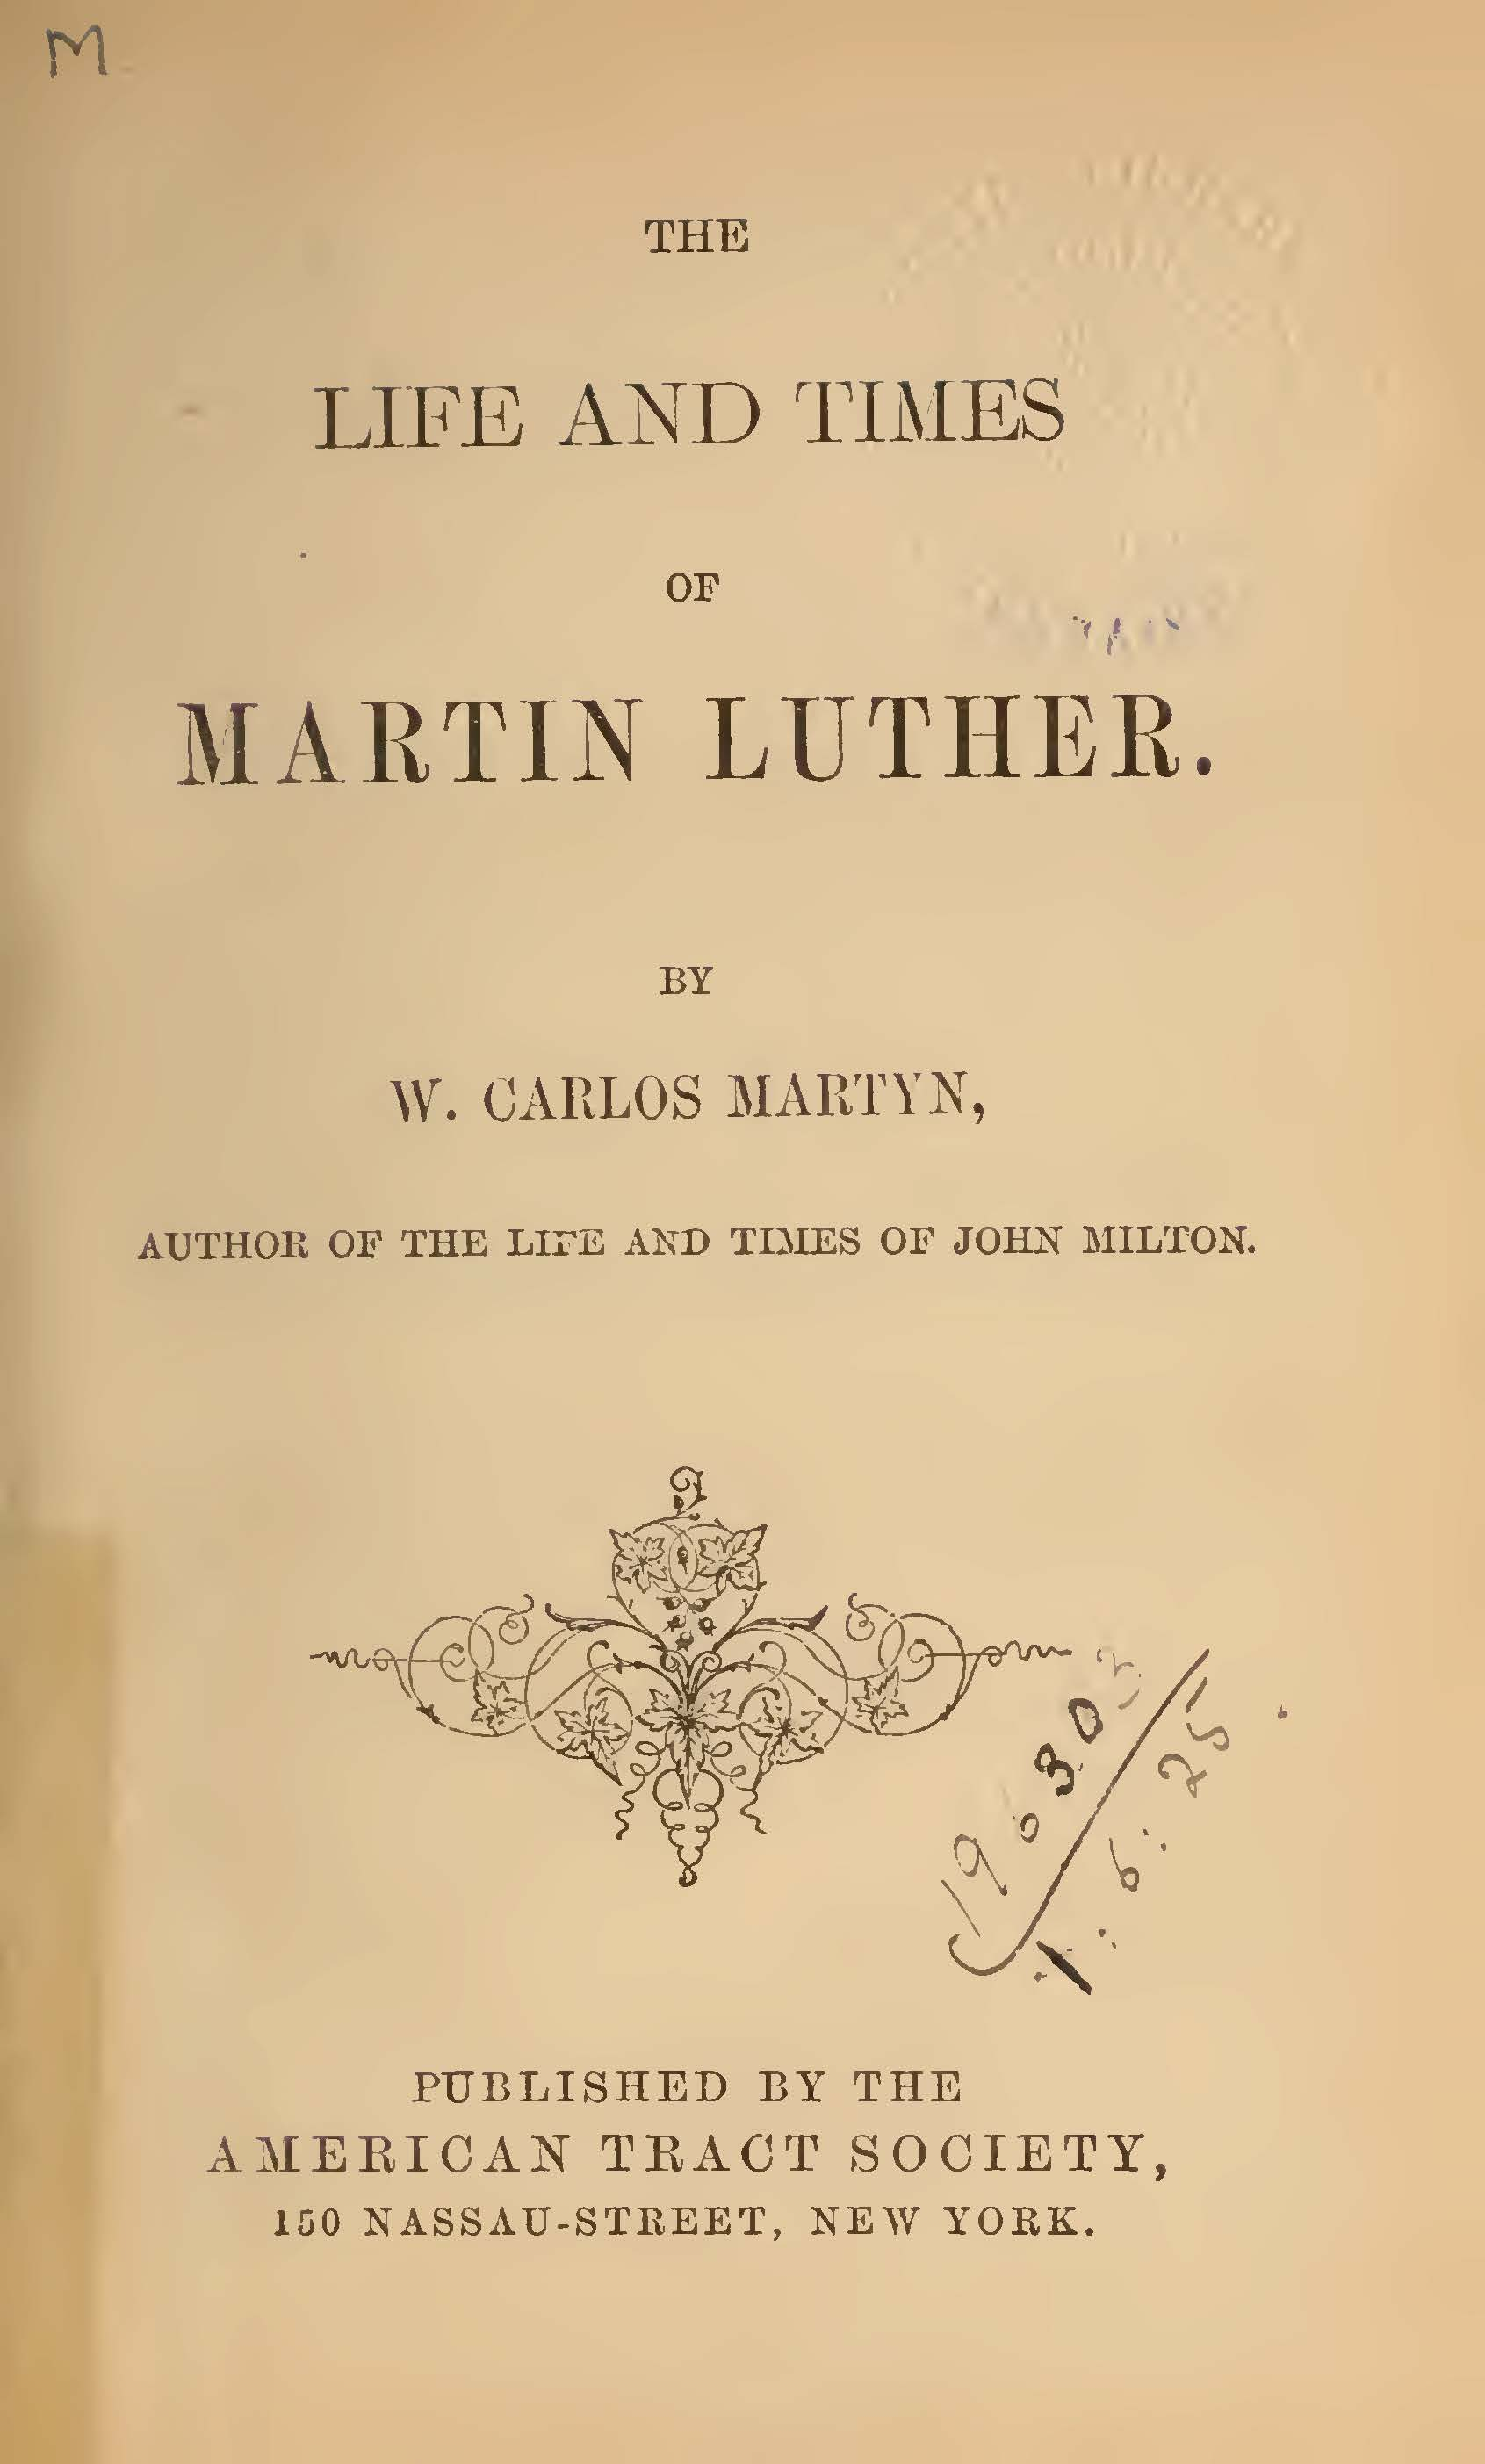 Martyn, William Carlos, The Life and Times of Martin Luther Title Page.jpg